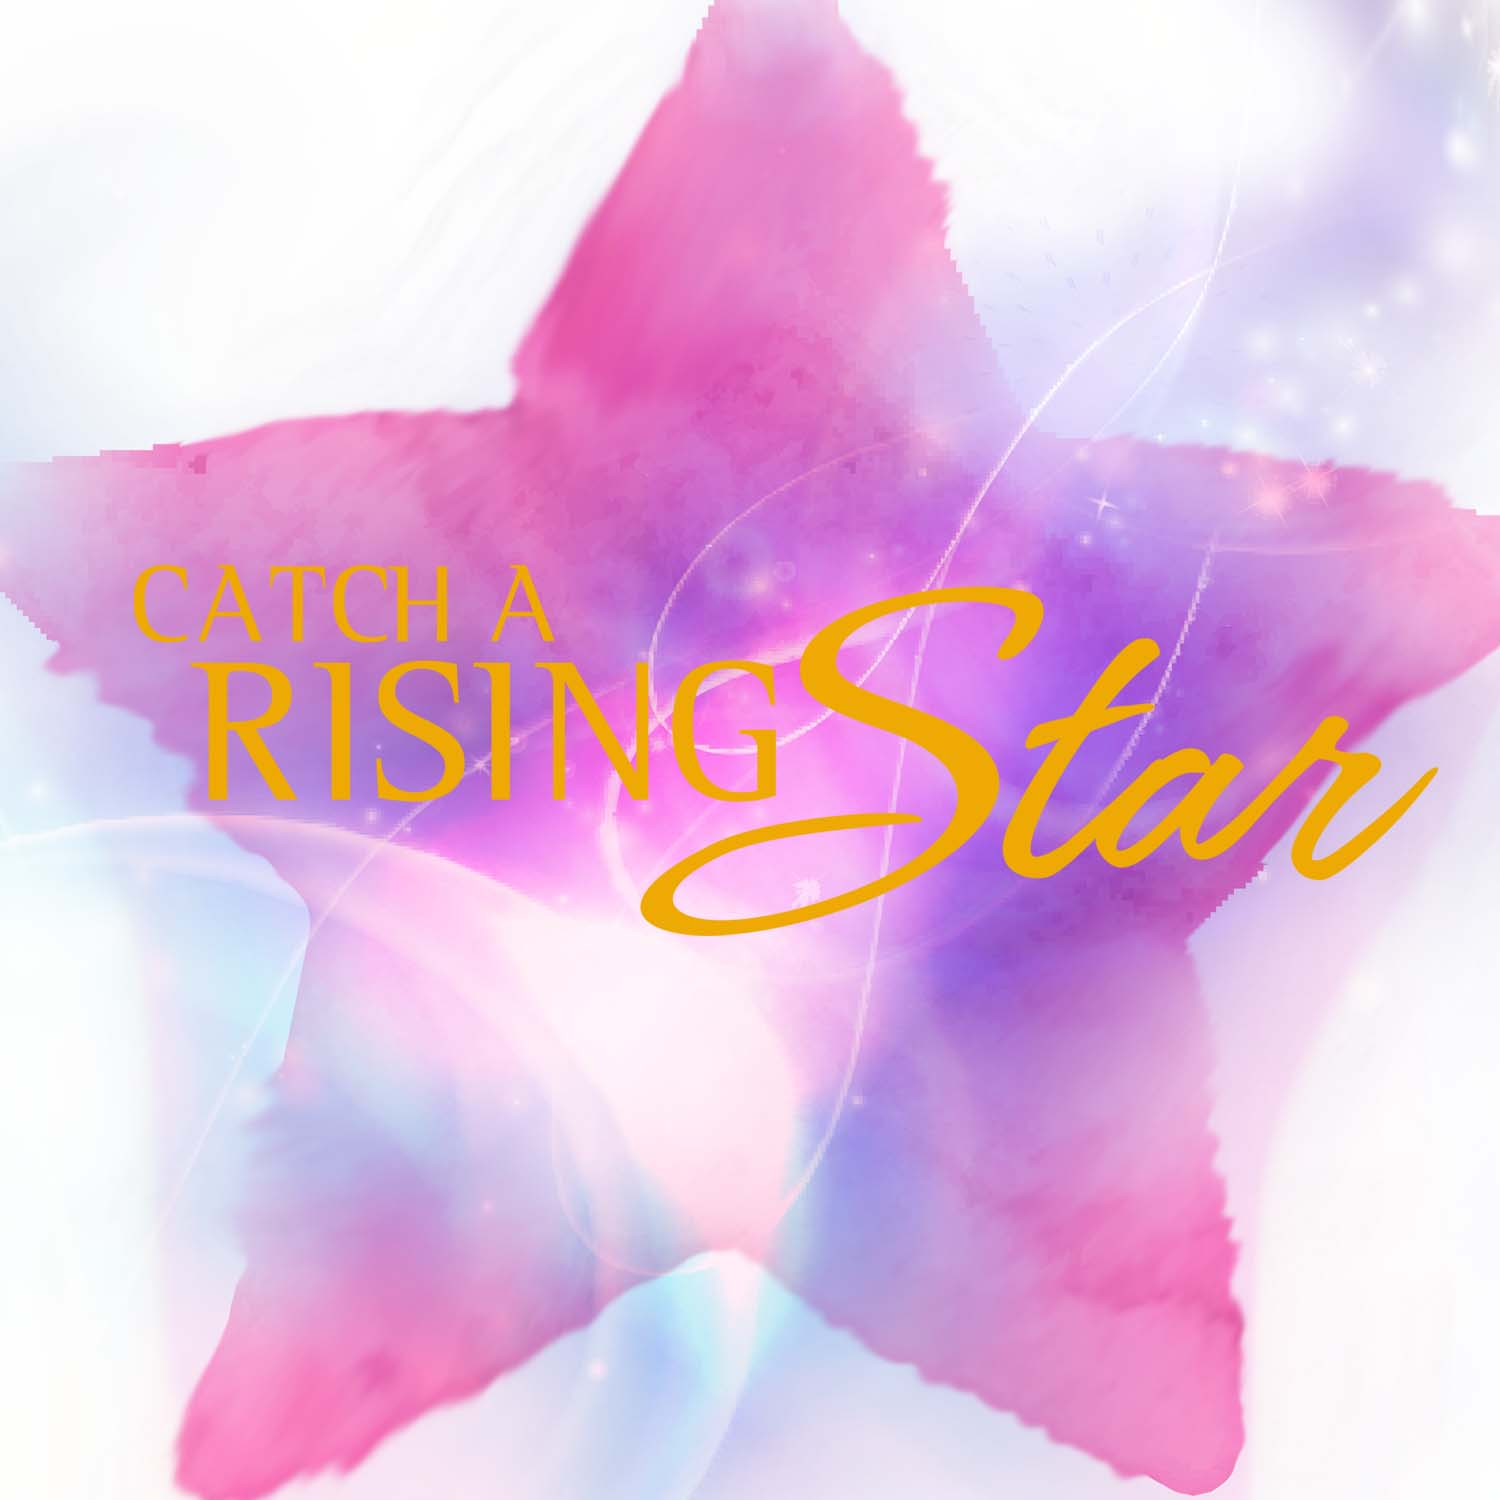 Catch a Rising Star Graphic (2016)